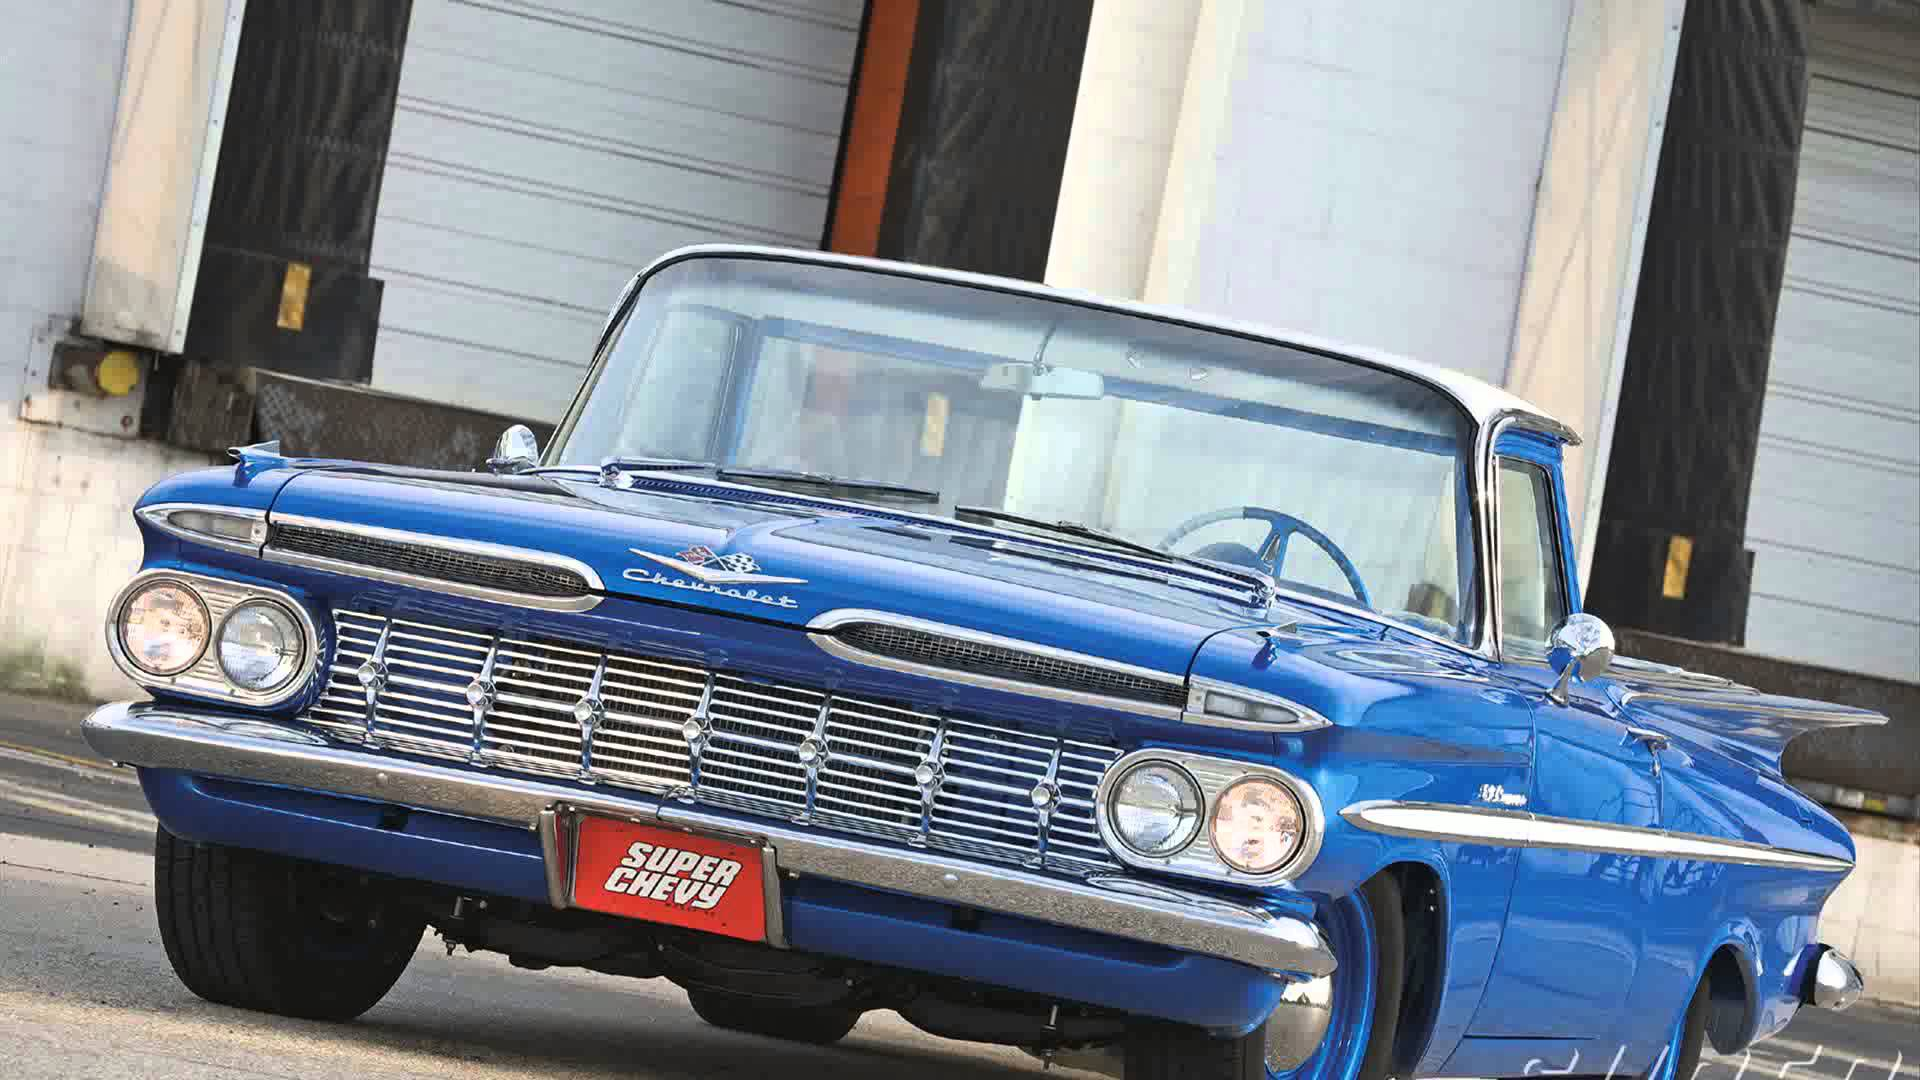 1959 Chevrolet El Camino Widescreen for desktop